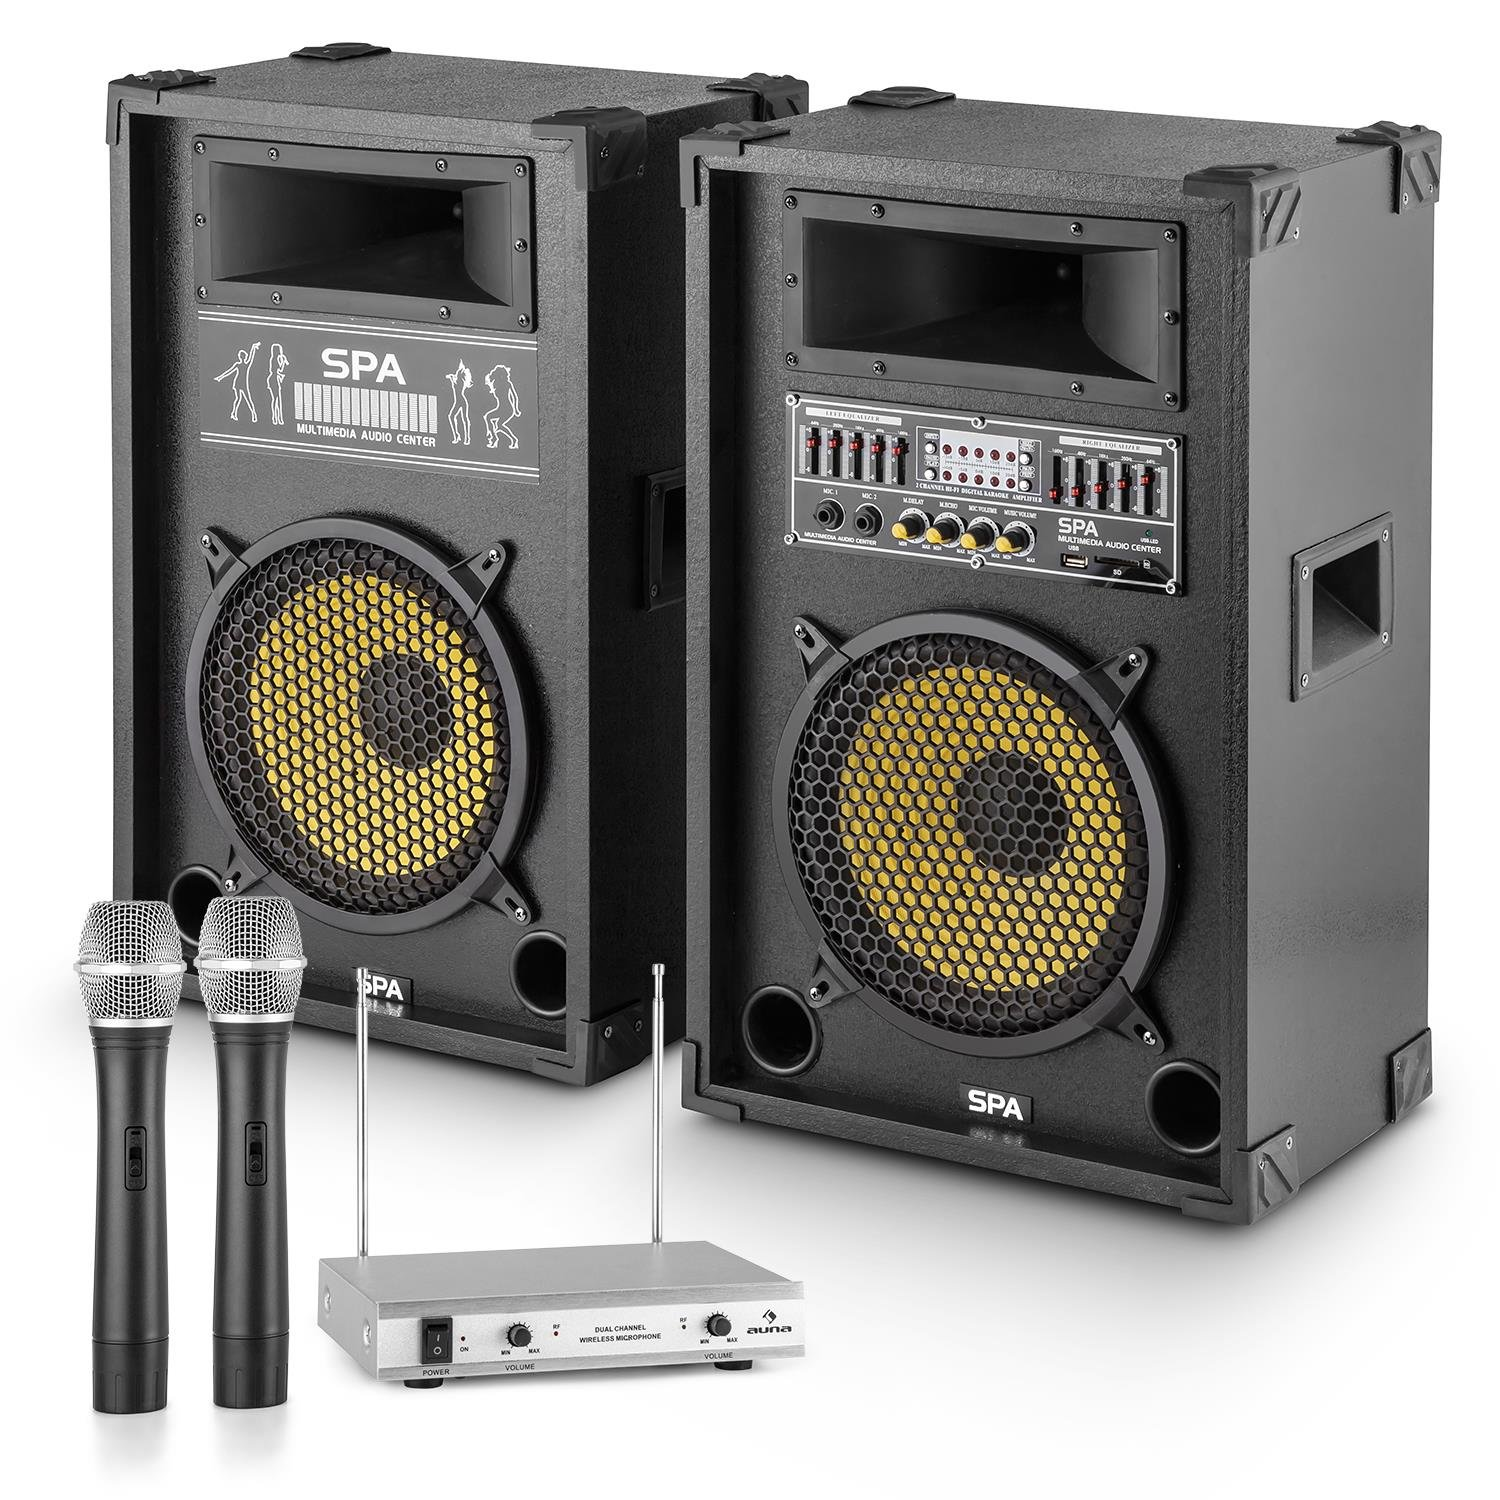 Set JD PA-Party Yellow Star 10 2 Casse Attive Stereo-karaoke da 400 Watt 4 Ohm Bassreflex Amplificatore Integrato Effetto Echo Porta USB SD MP3 2 Microfoni Senza Fili Centralina Delay microfono impostabile E-Star P-28285-30867